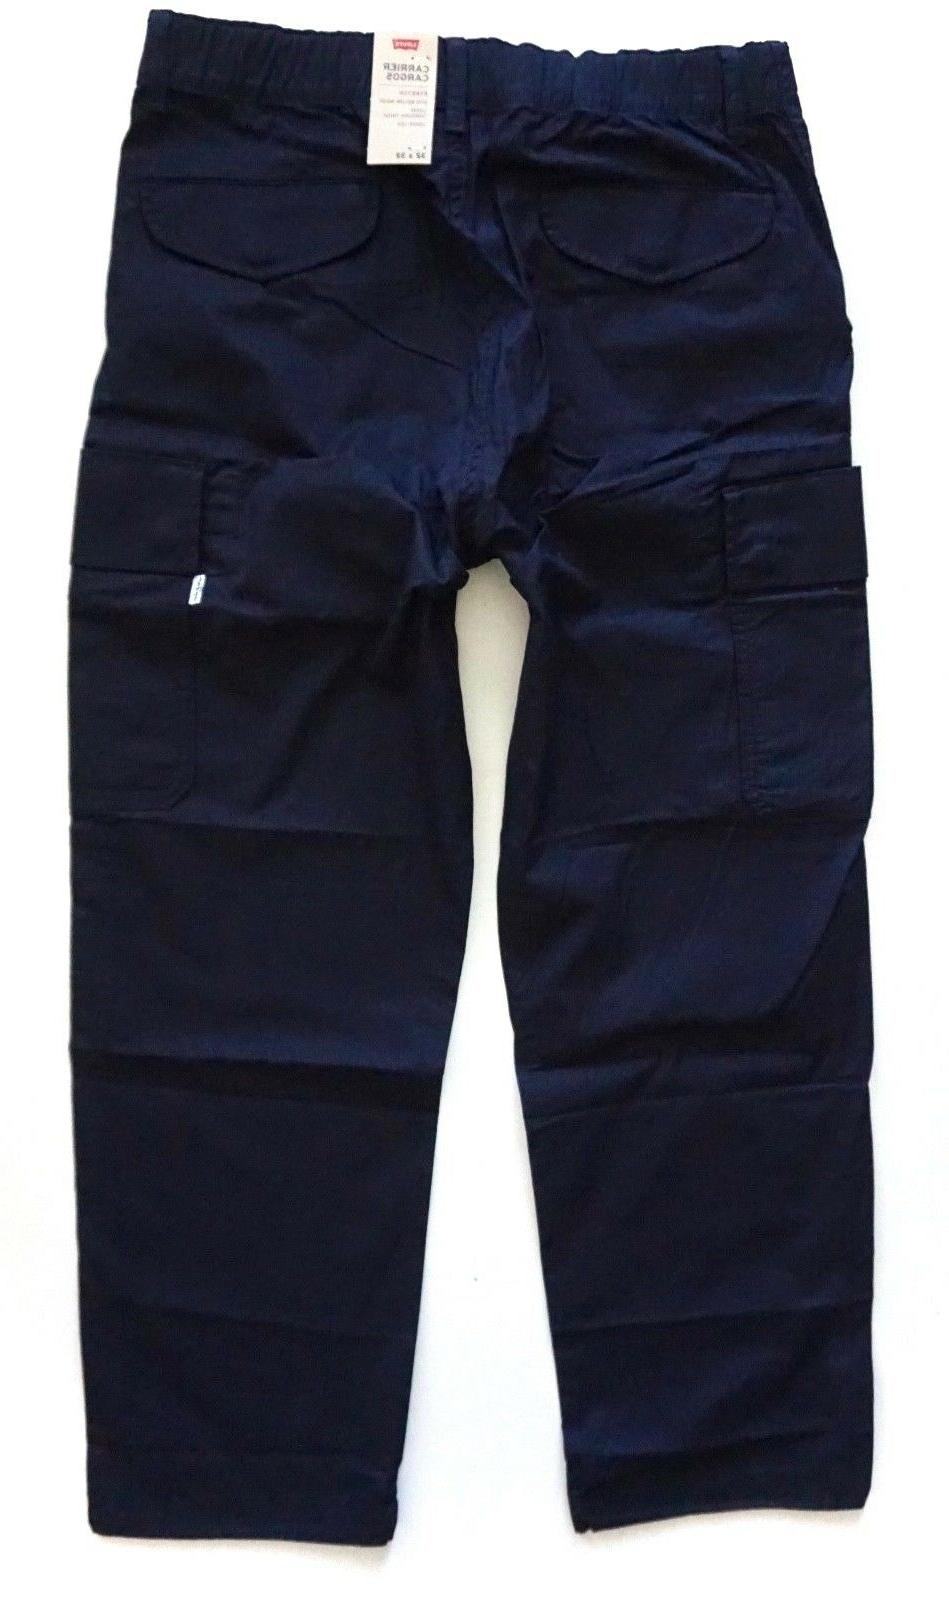 Levi's Blue Carrier Cargo Pants